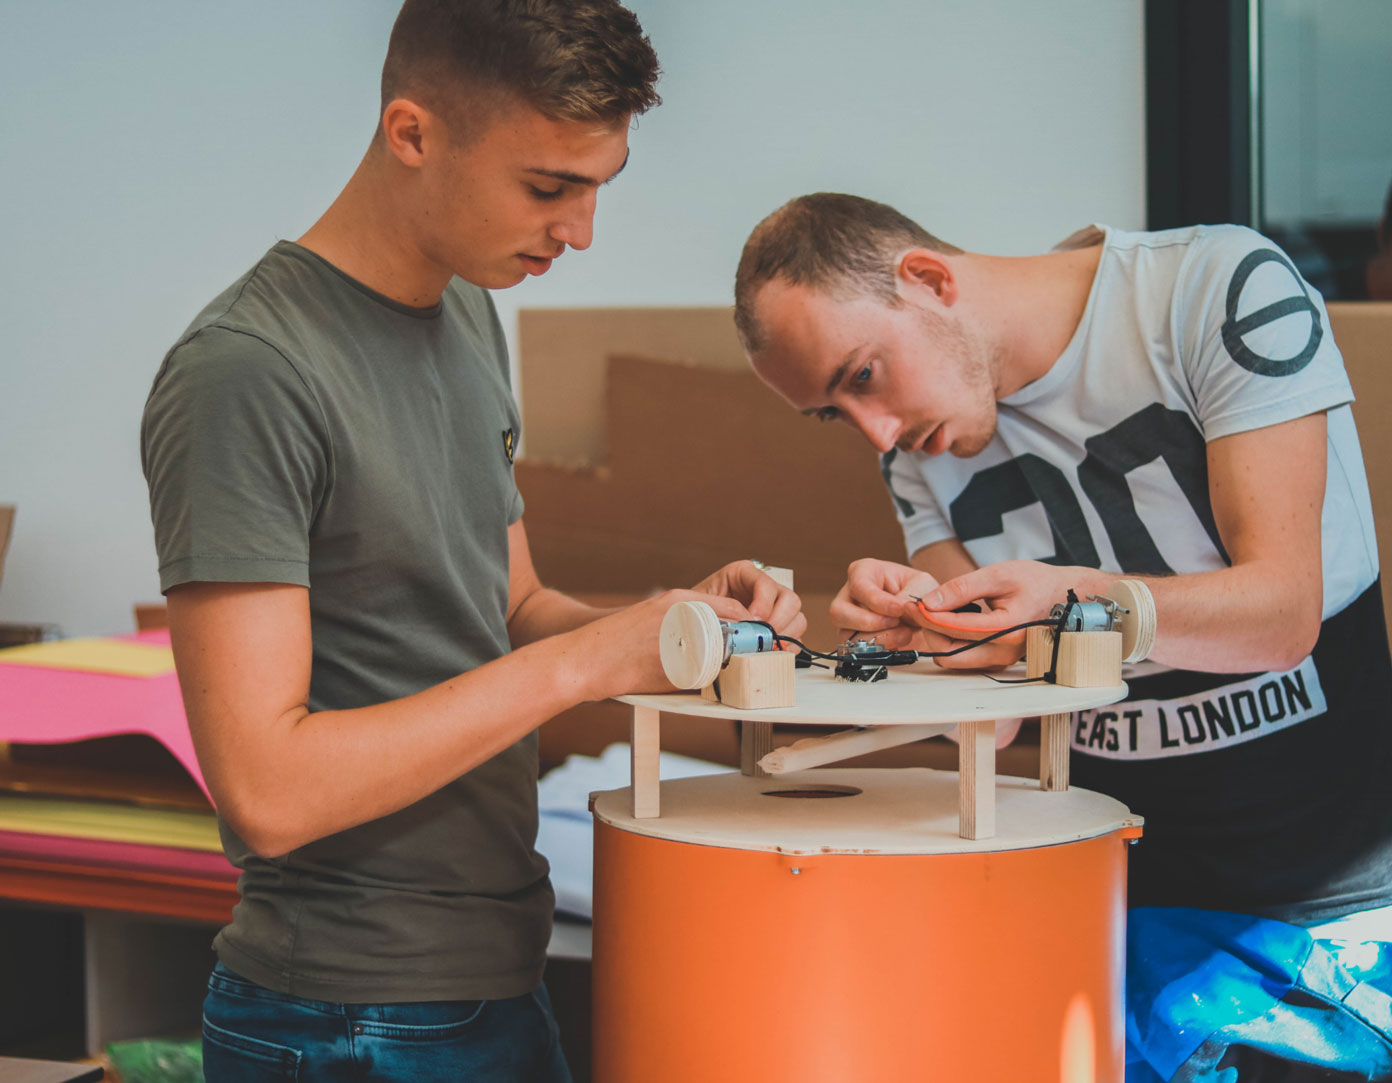 Two Fontys Pulsed students concentrating hard while building their prototype